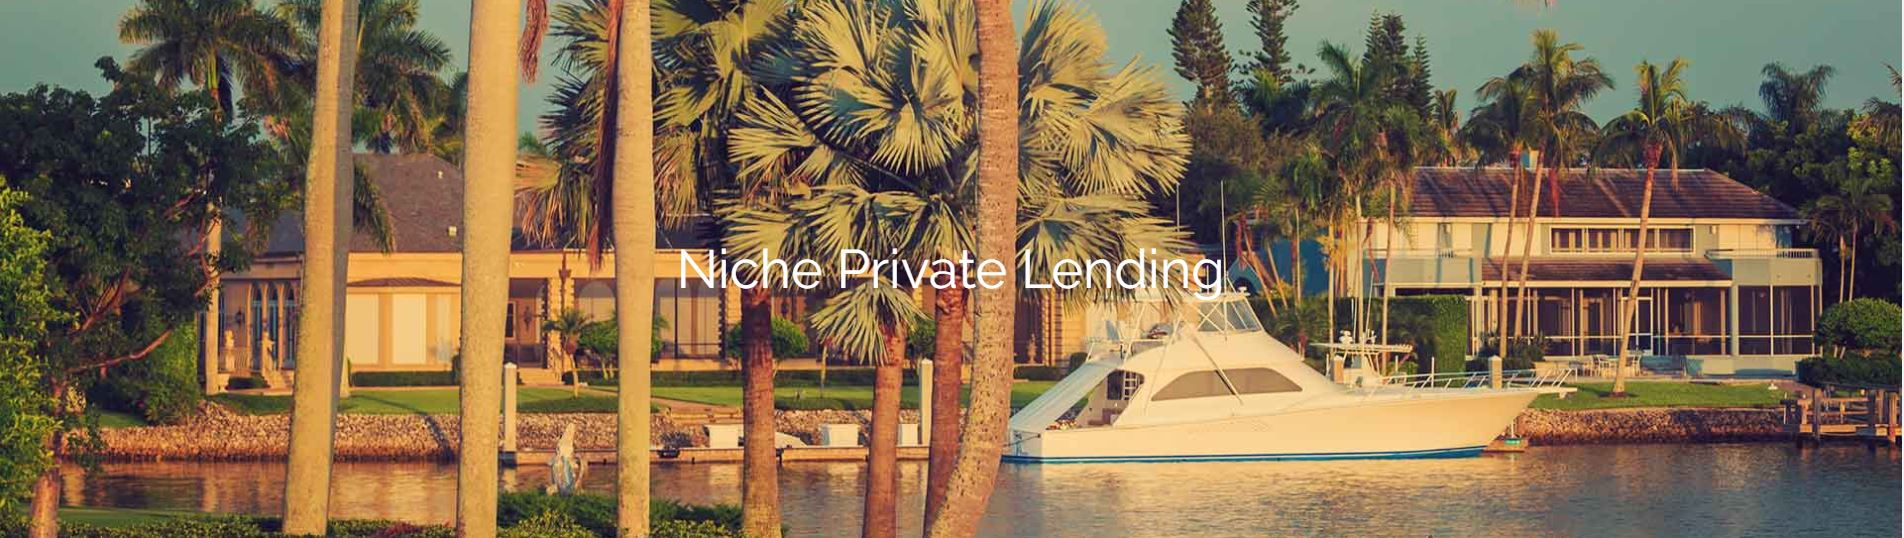 Bonita Springs Real Estate broker, Naples Real Estate Broker, Bonita Real Estate Marketing, Private Lenders, Naples Private Lending